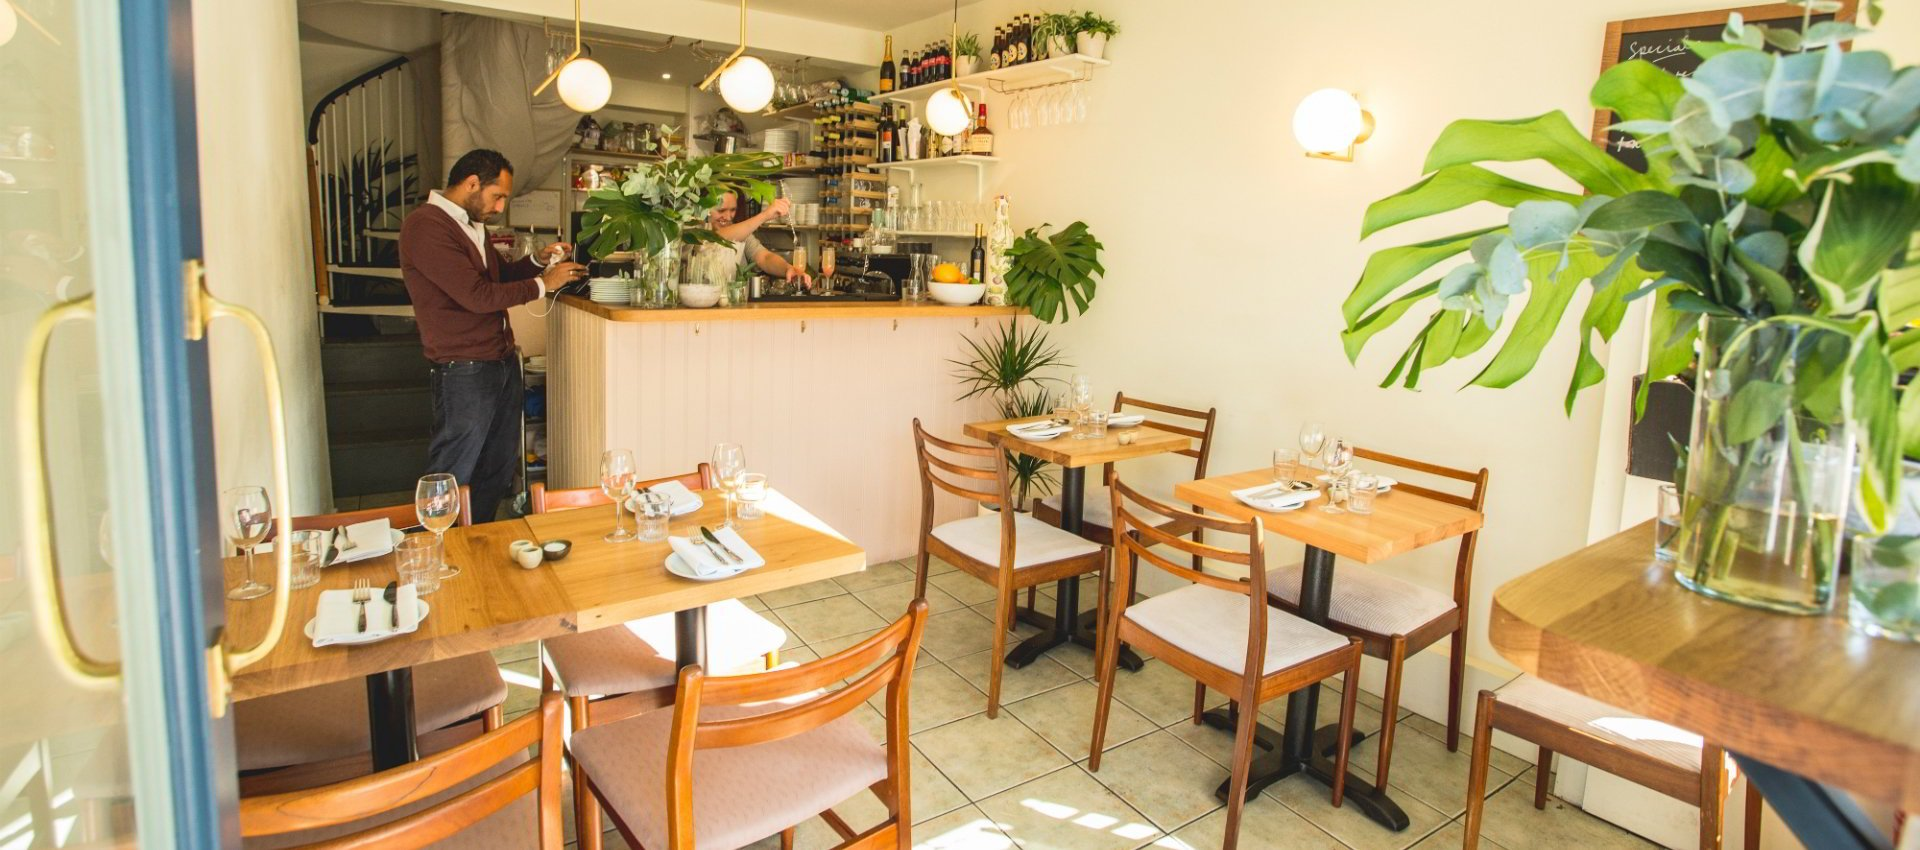 Padella Sister Restaurant The Best Restaurant In Every London Neighbourhood The Nudge